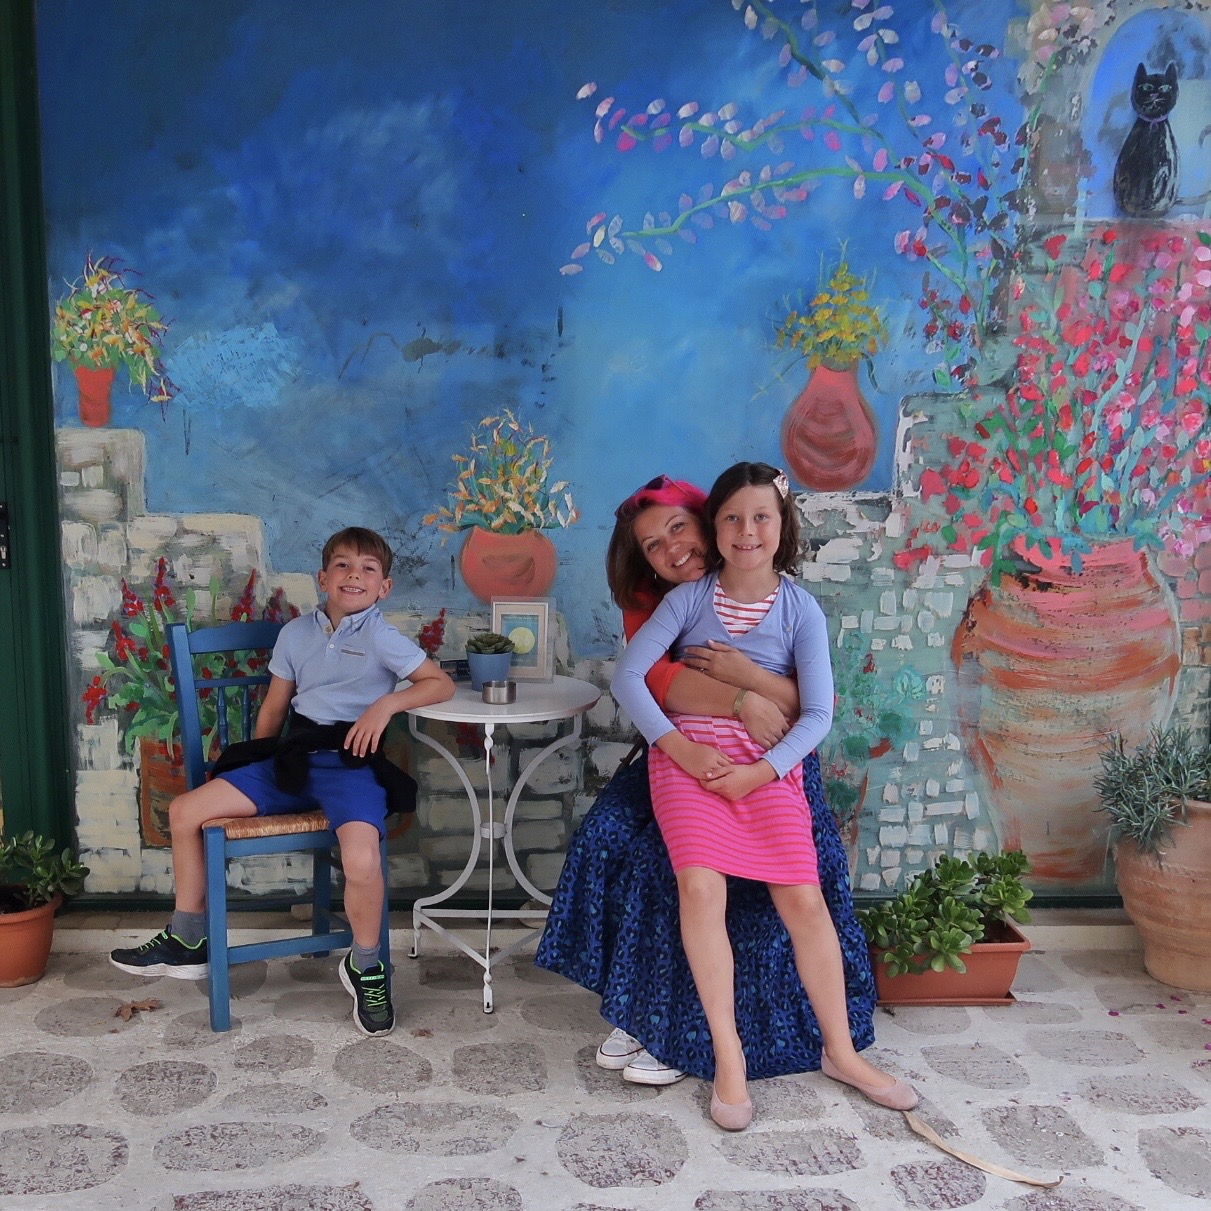 A photo from my post about Kalyves Beach Hotel in Crete. We found some colourful graffiti depicting a garden scene and my son, daughter and I sat in front of it on a little table and chairs. The main colour is blue.